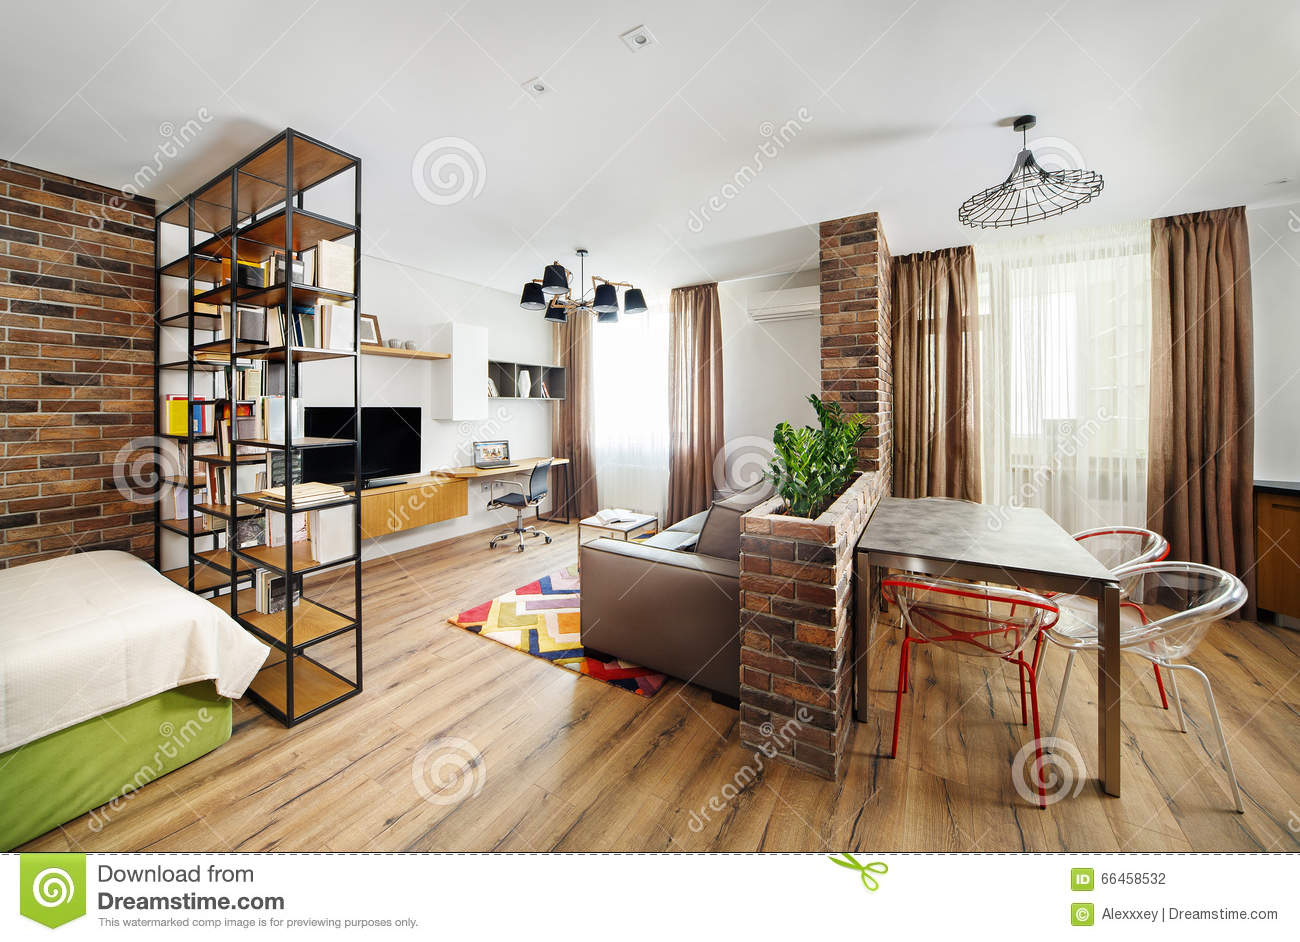 Apartments With Hardwood Floors apartment designs shown with rendered 3d floor plans Interior Studio Apartments With Bookshelves And Hardwood Floors